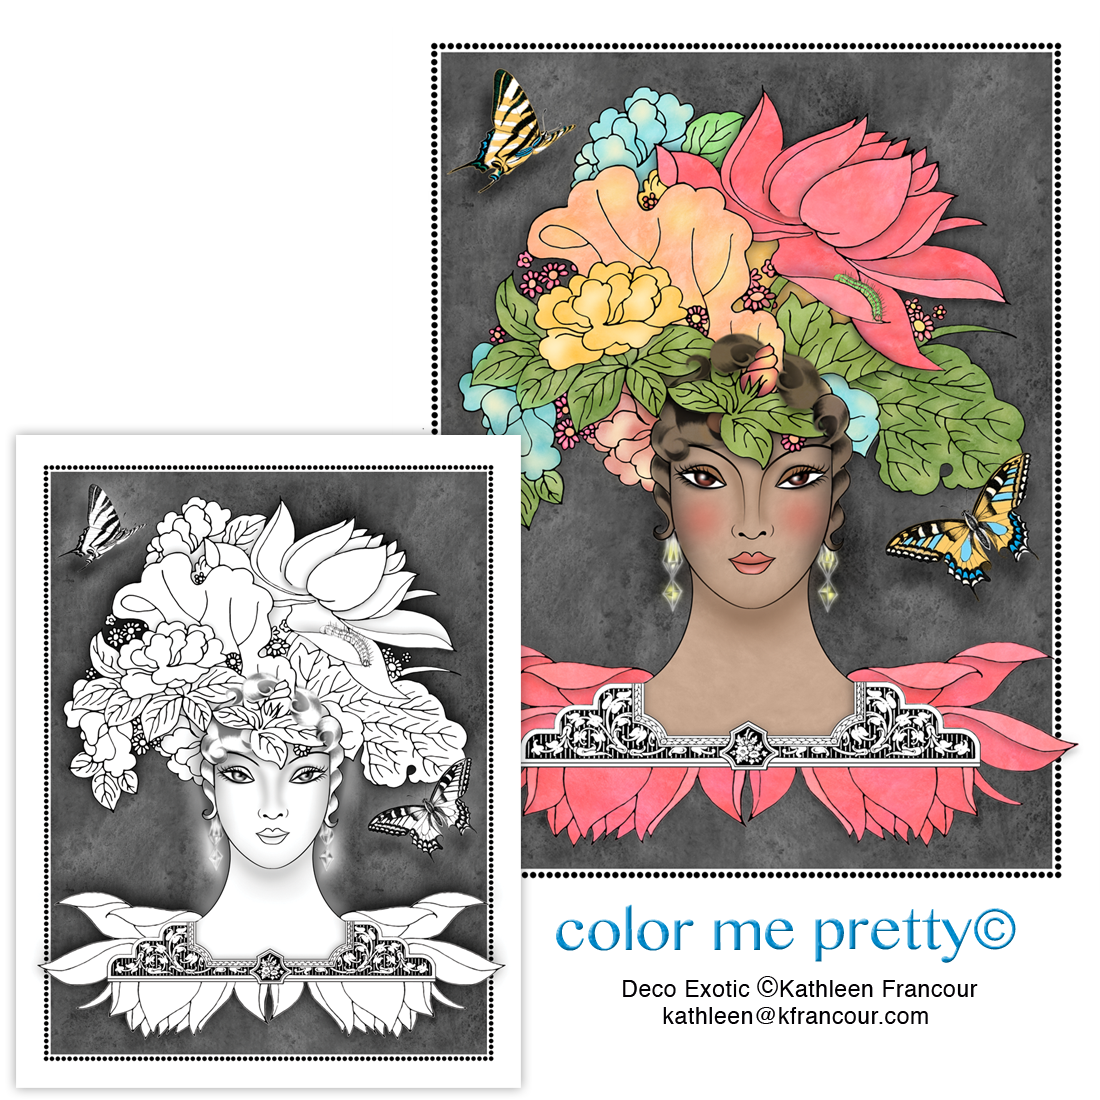 2-ECHO ART DECO-EXOTIC-COLOR ME PRETTY GALLERY PG.png